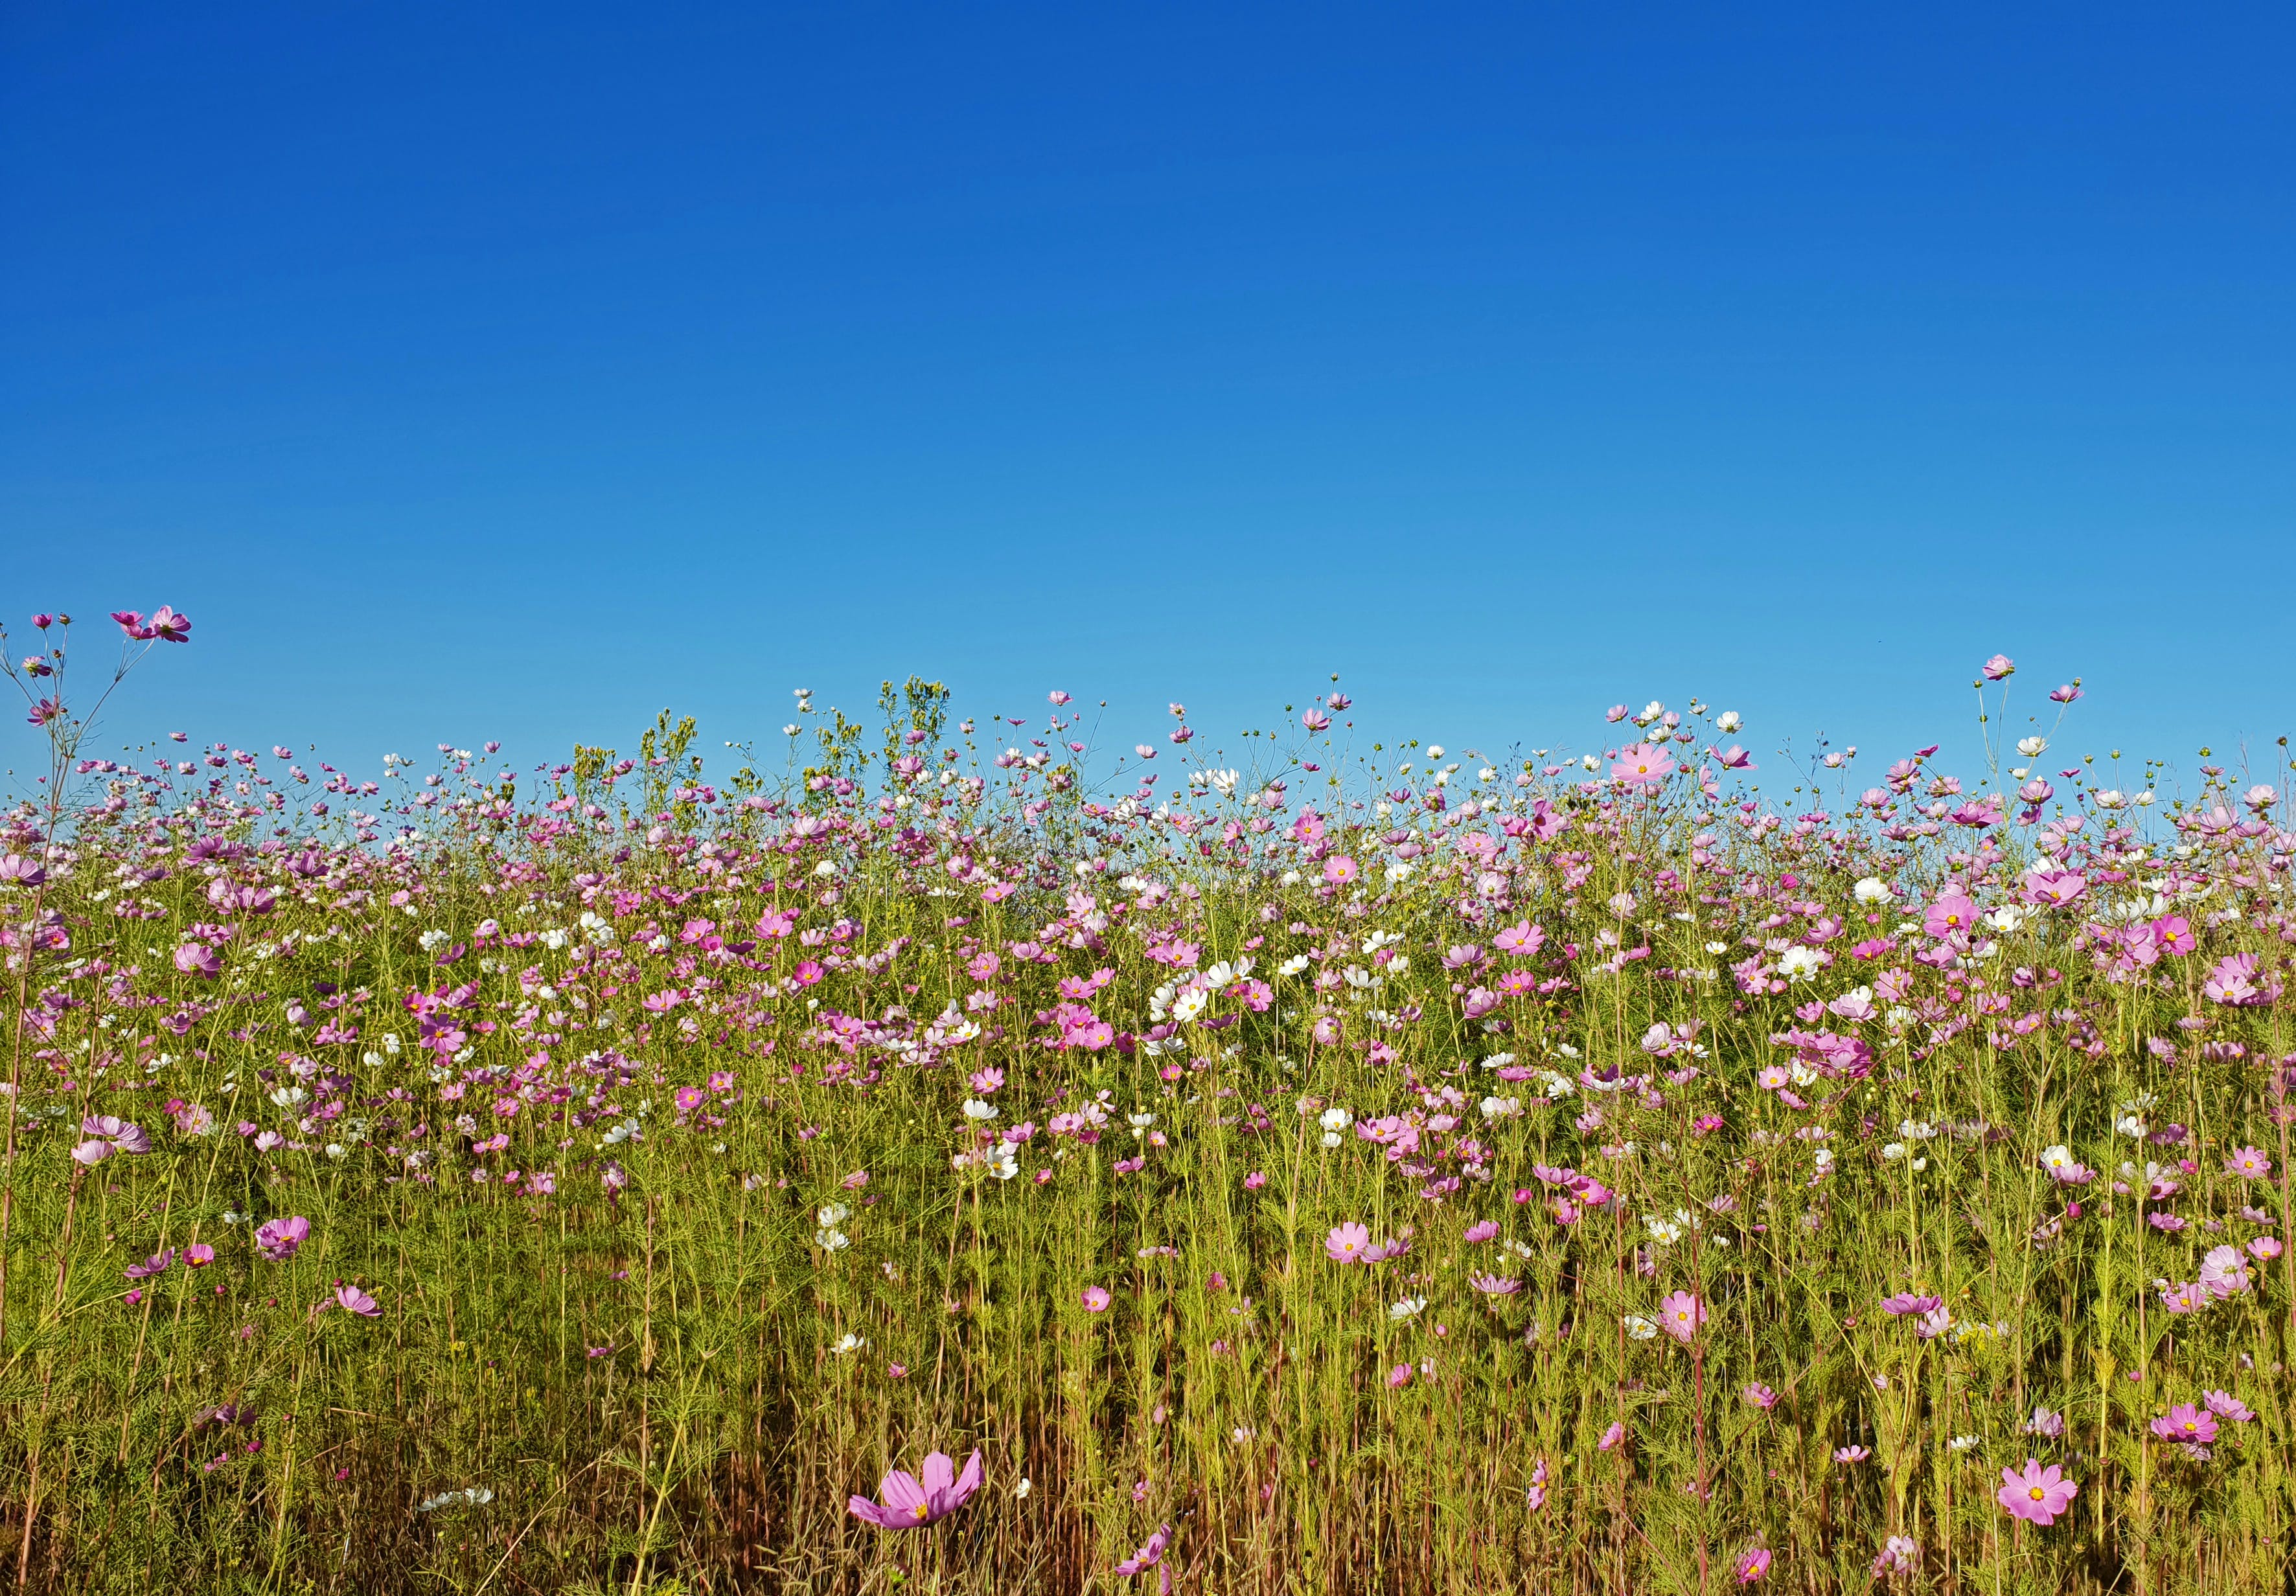 Photography of Flowers Under Clear Sky